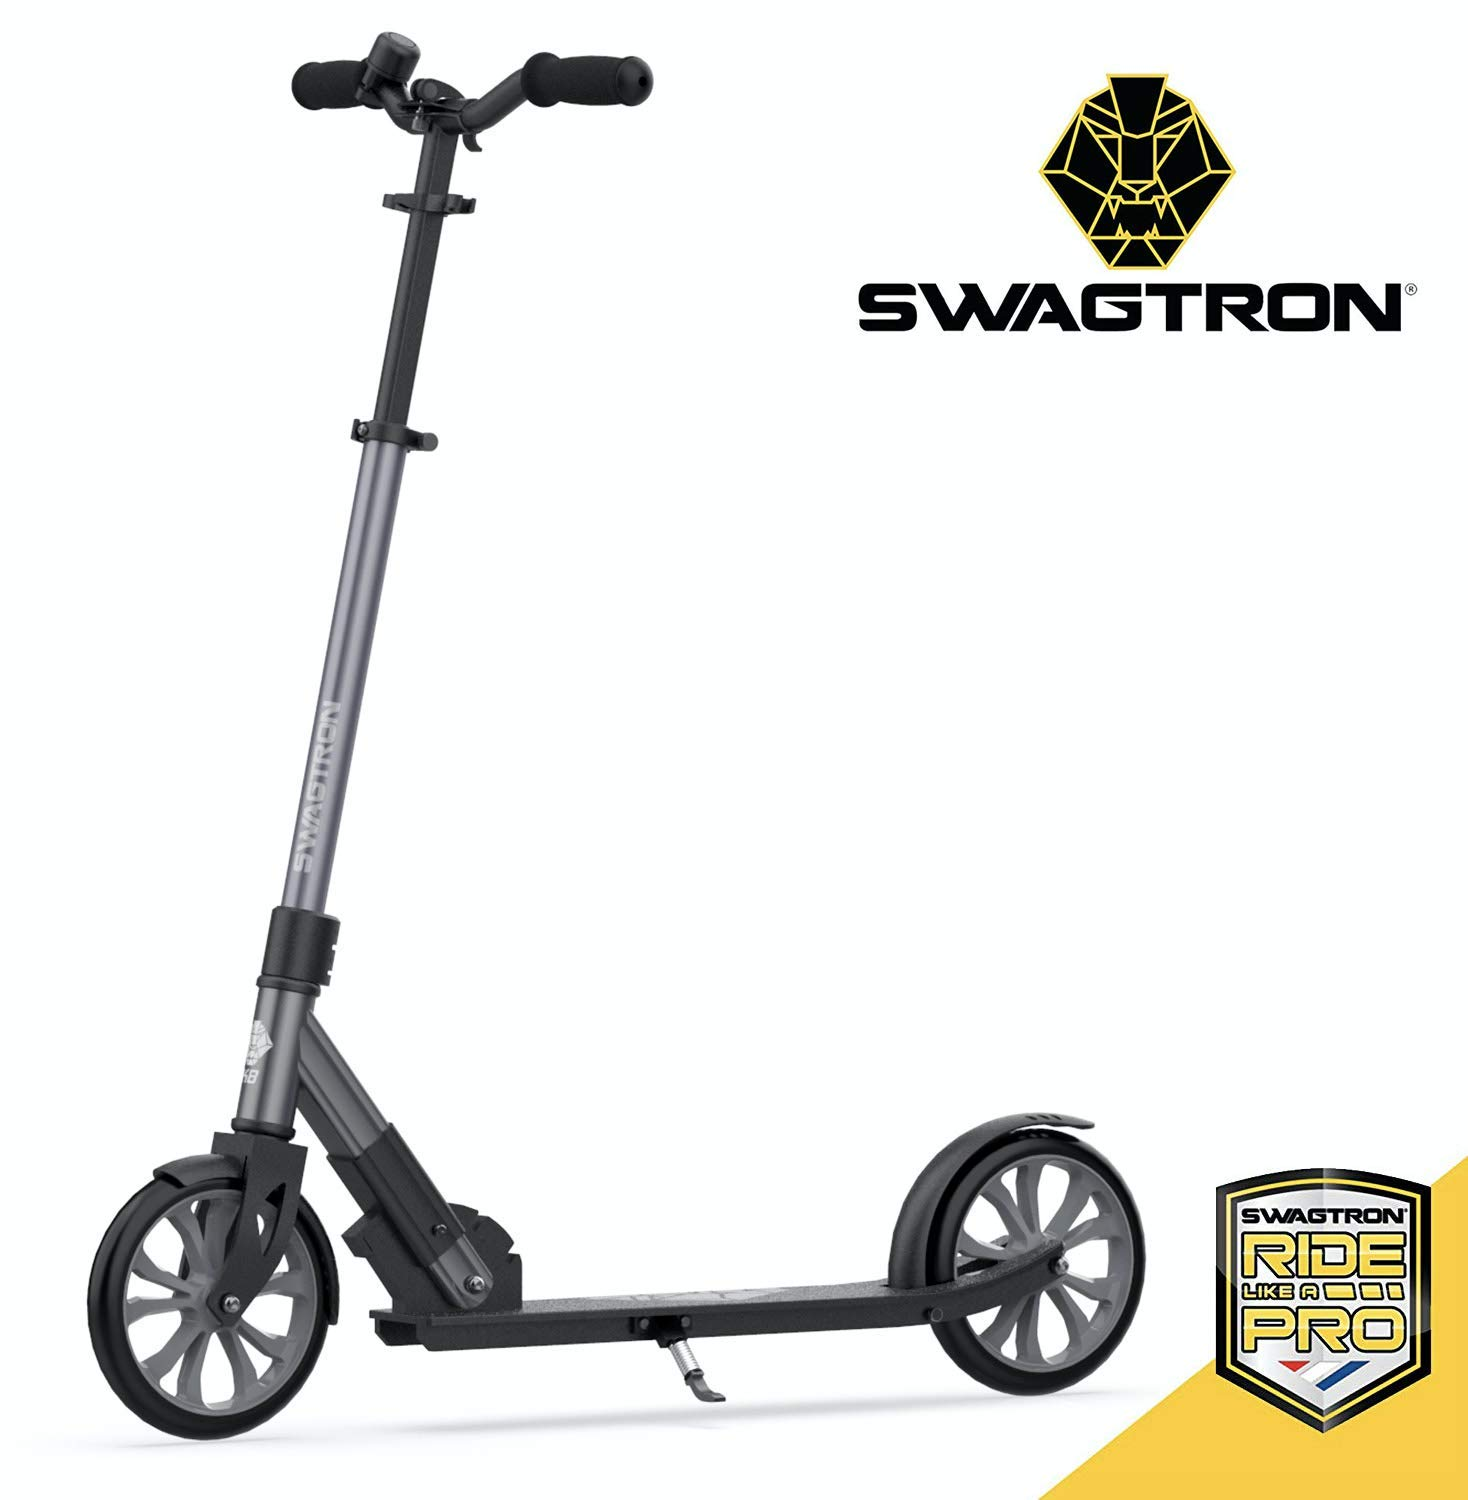 Top 10 Best Kick Scooter For Commuting - Buyer's Guide 2